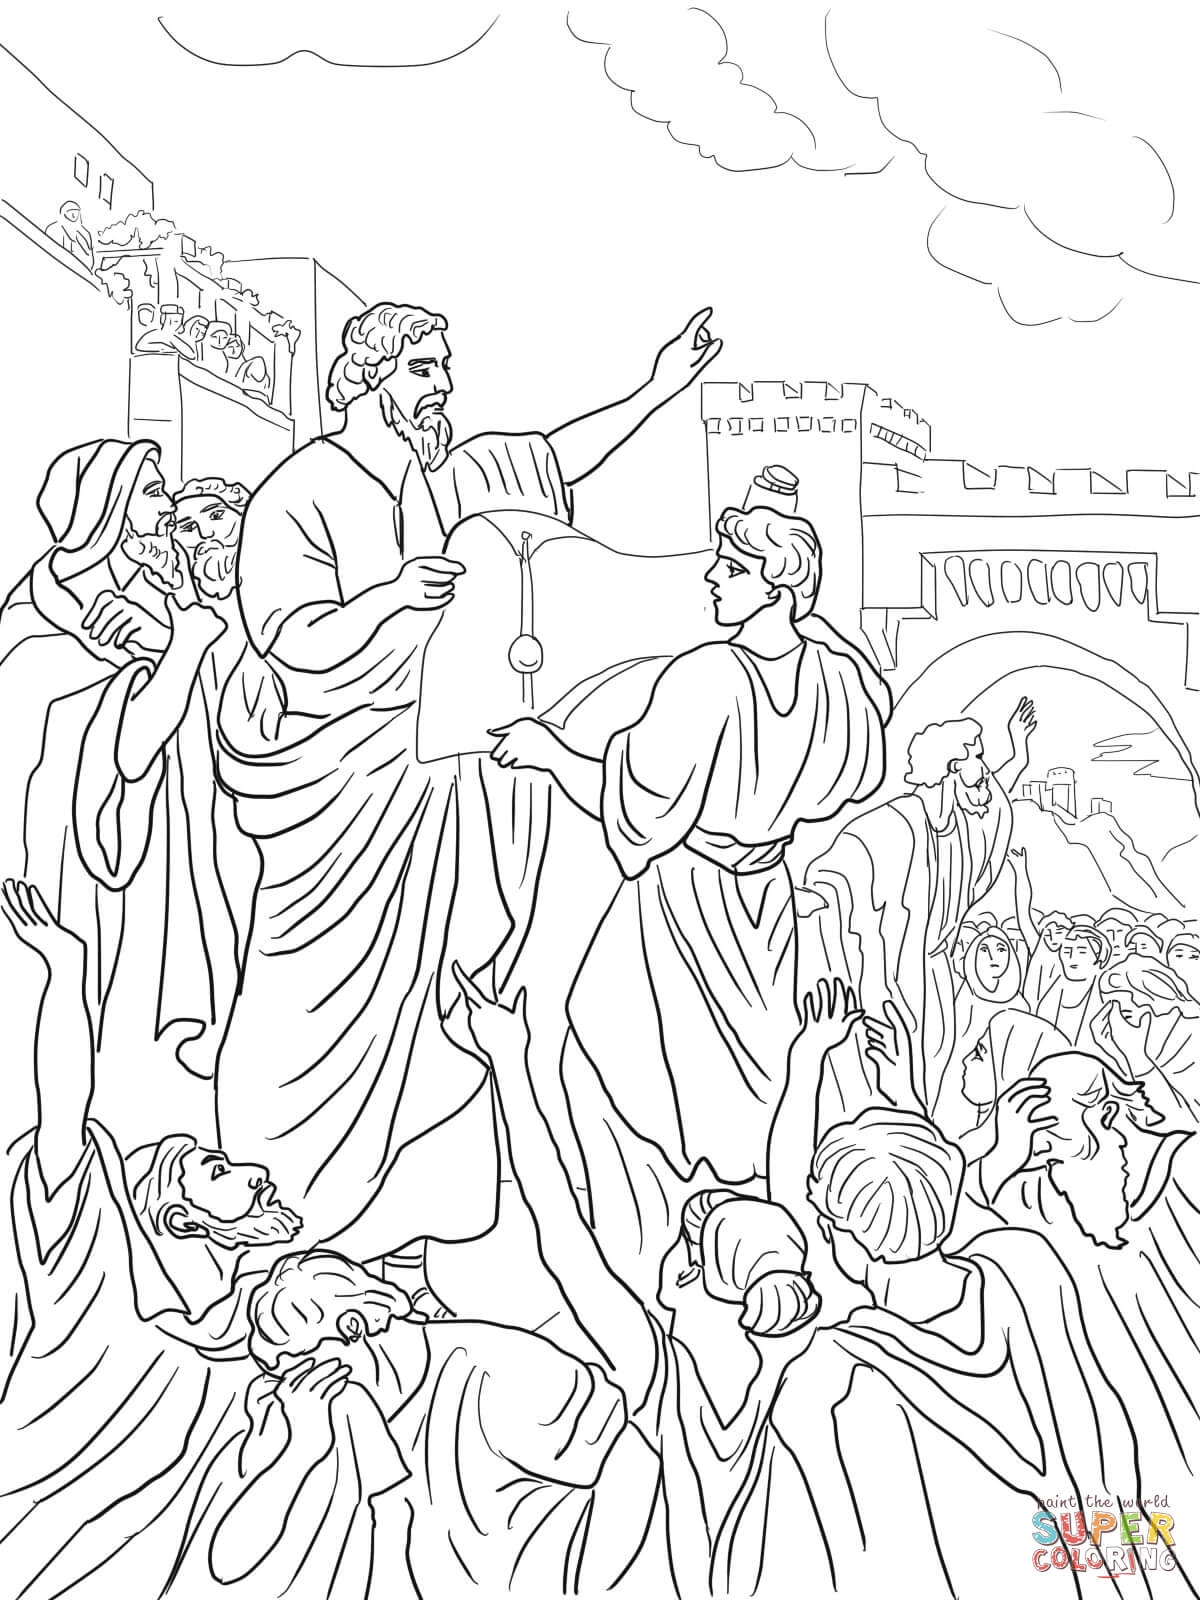 28 King David Coloring Pages Compilation FREE COLORING PAGES